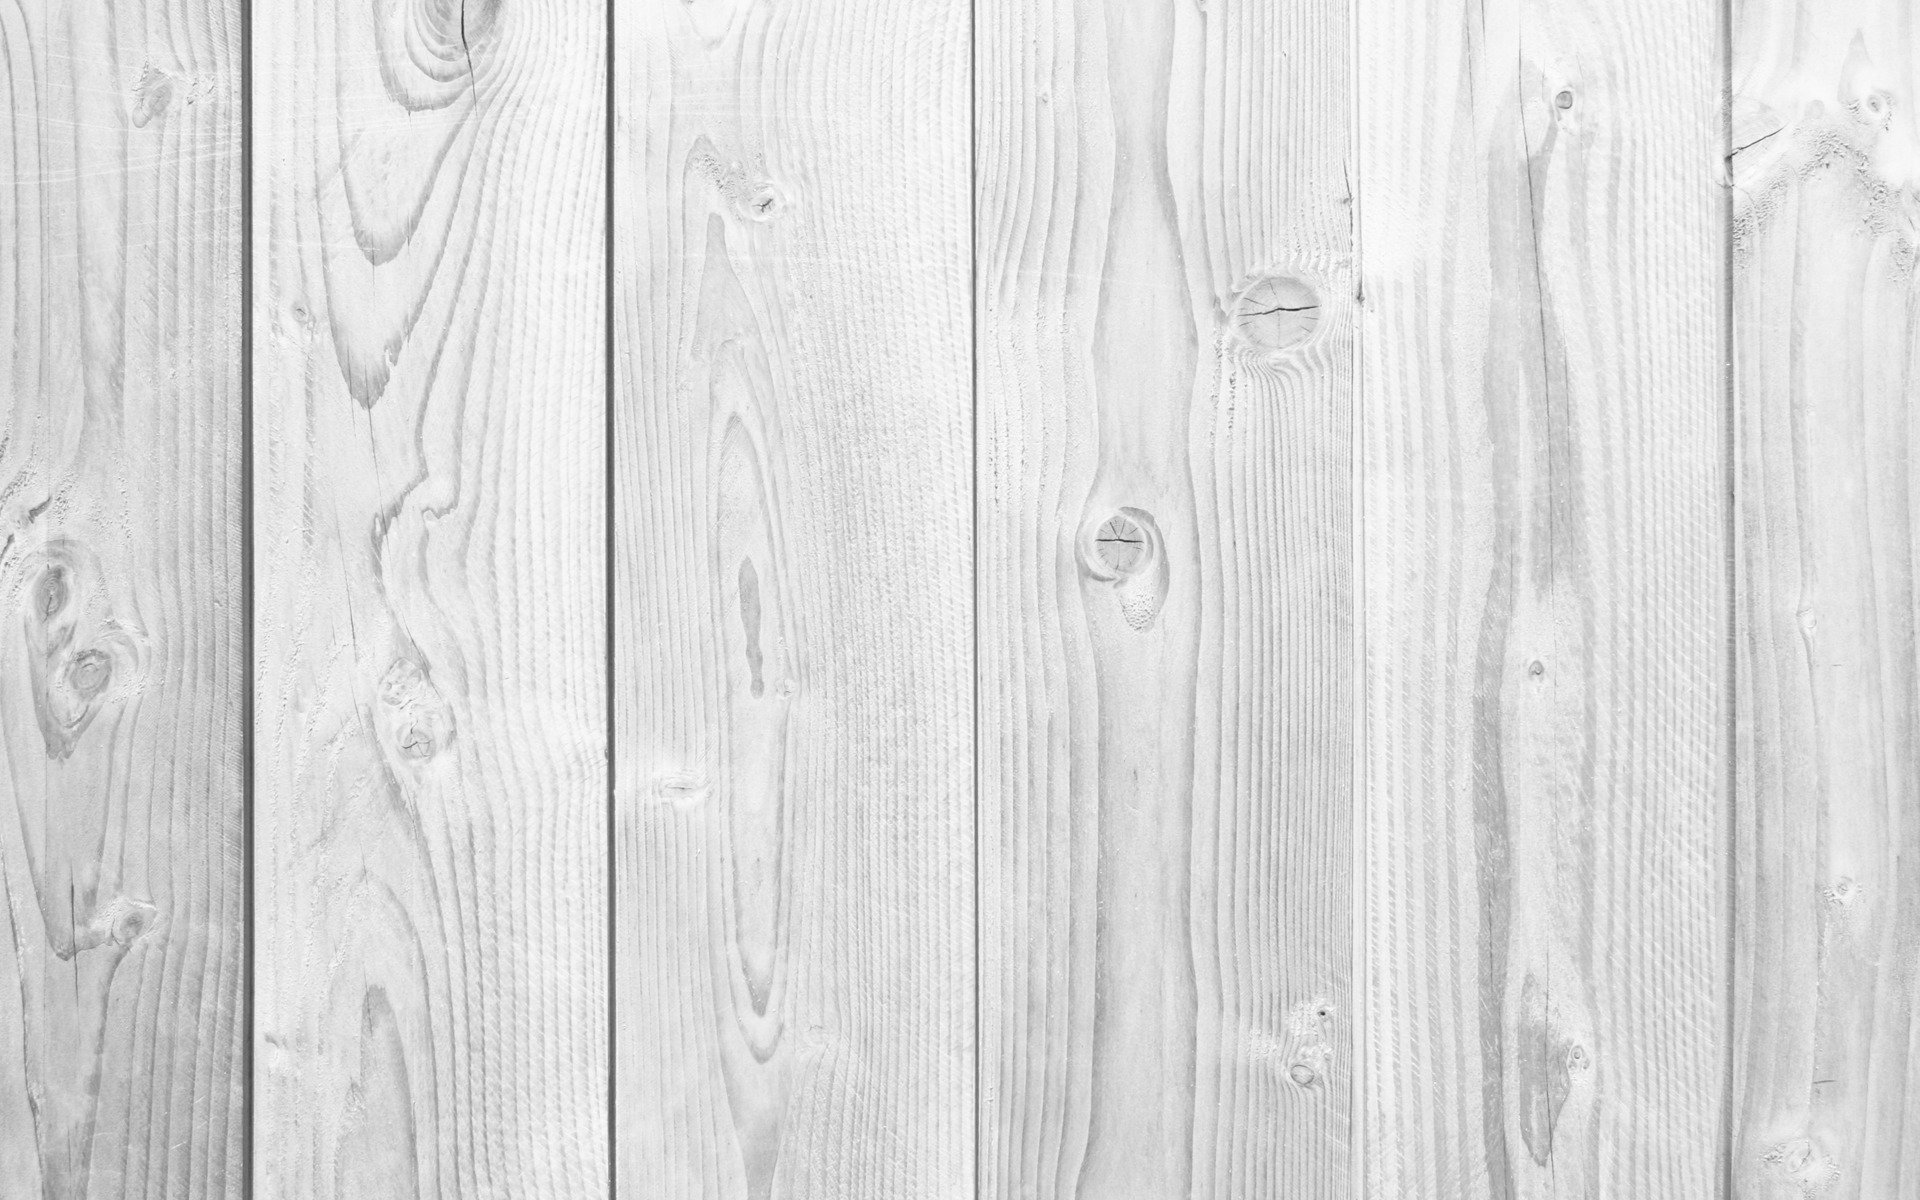 comwp contentuploads201308white wood wall texture wallpaperjpg 1920x1200